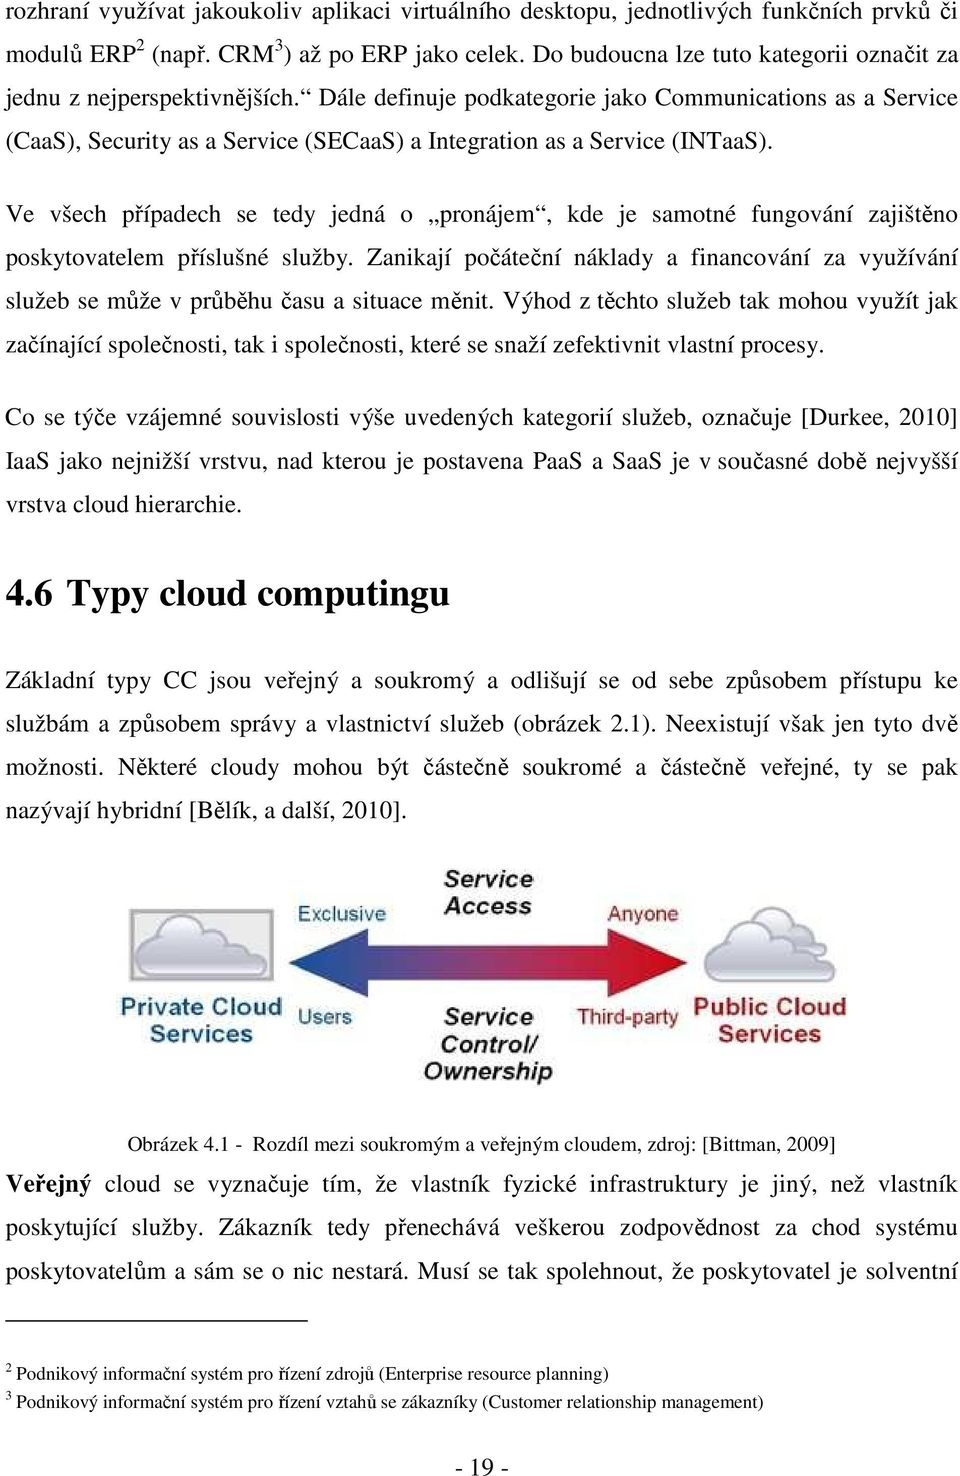 Dále definuje podkategorie jako Communications as a Service (CaaS), Security as a Service (SECaaS) a Integration as a Service (INTaaS).